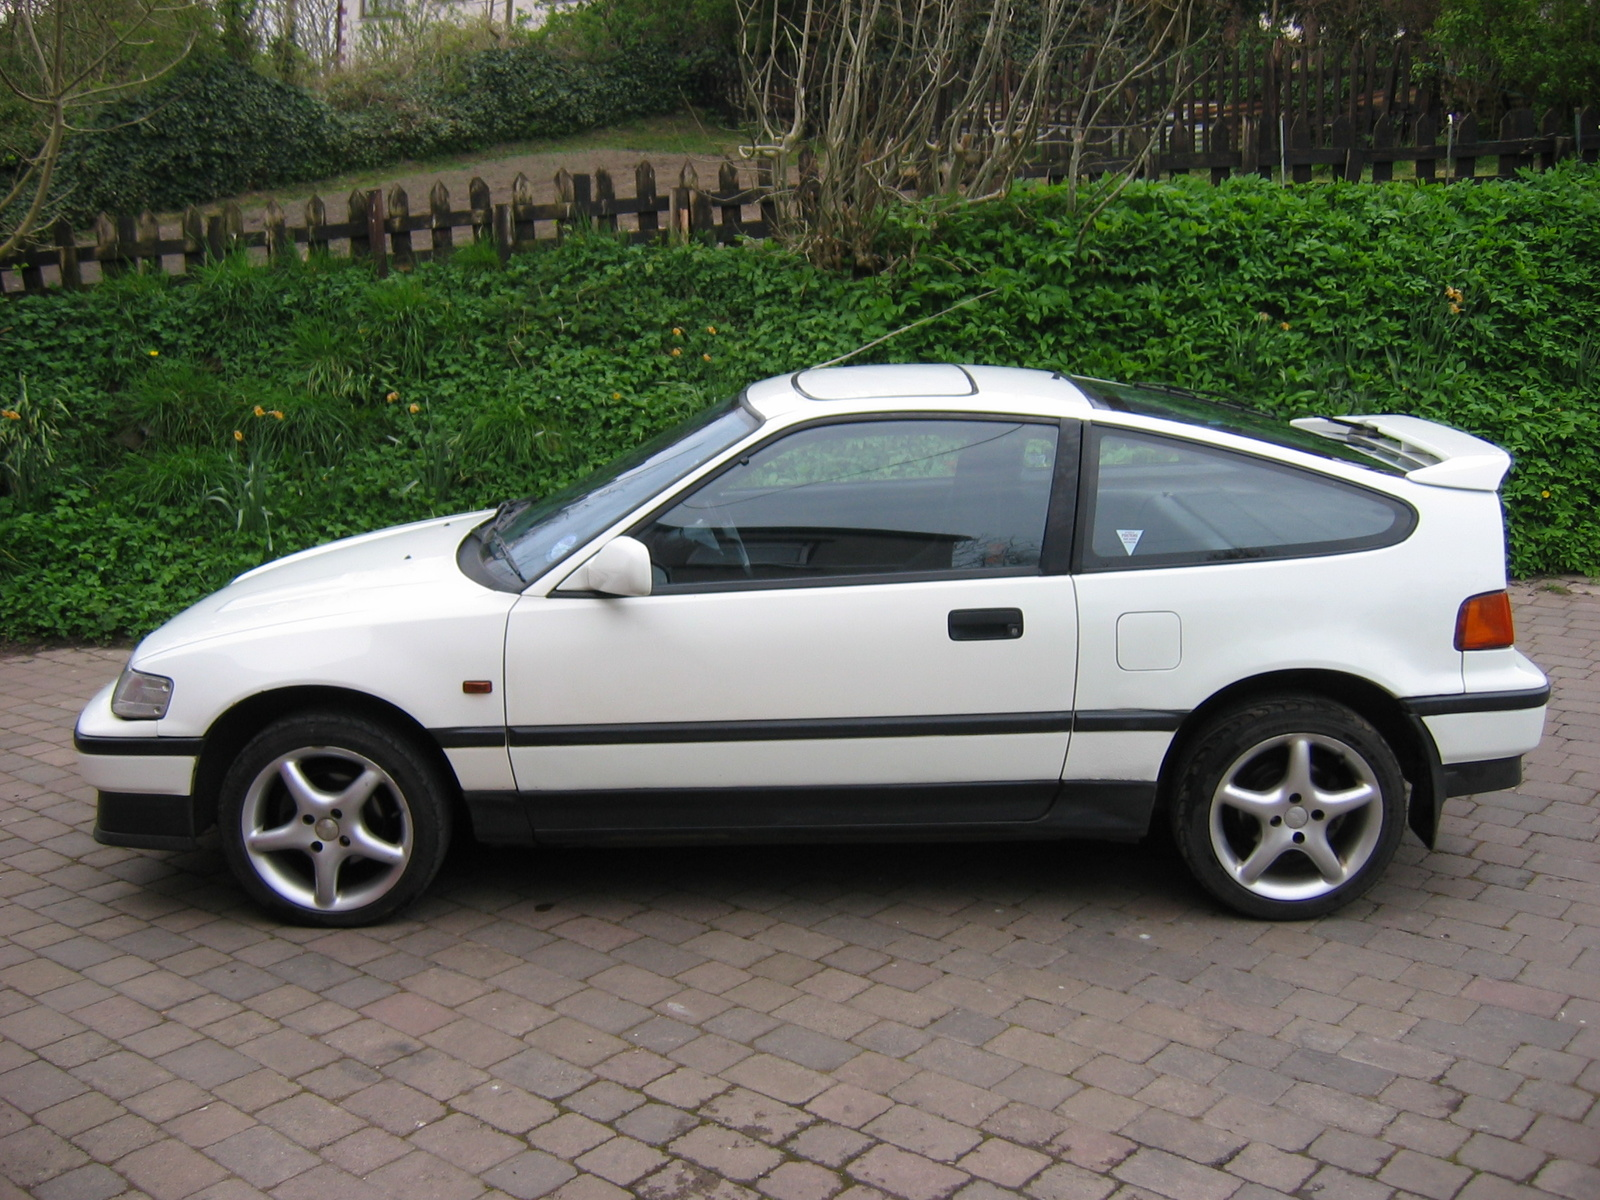 Honda Civic CRX #1